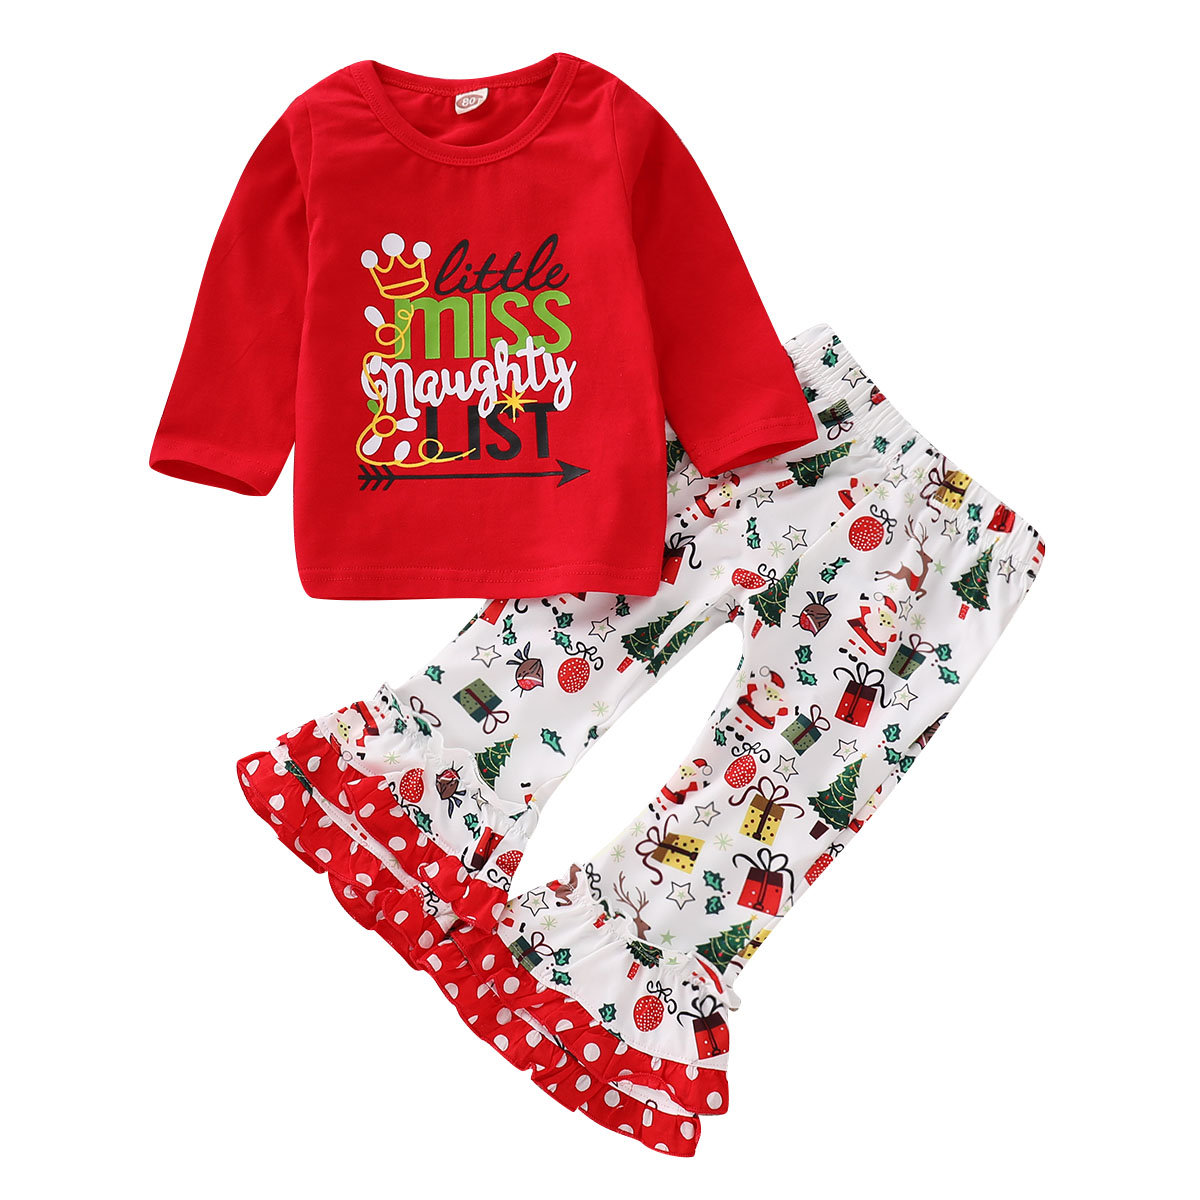 Christmas Party Girls Toddlers Printed Clothing Sets For 1Y-7Y